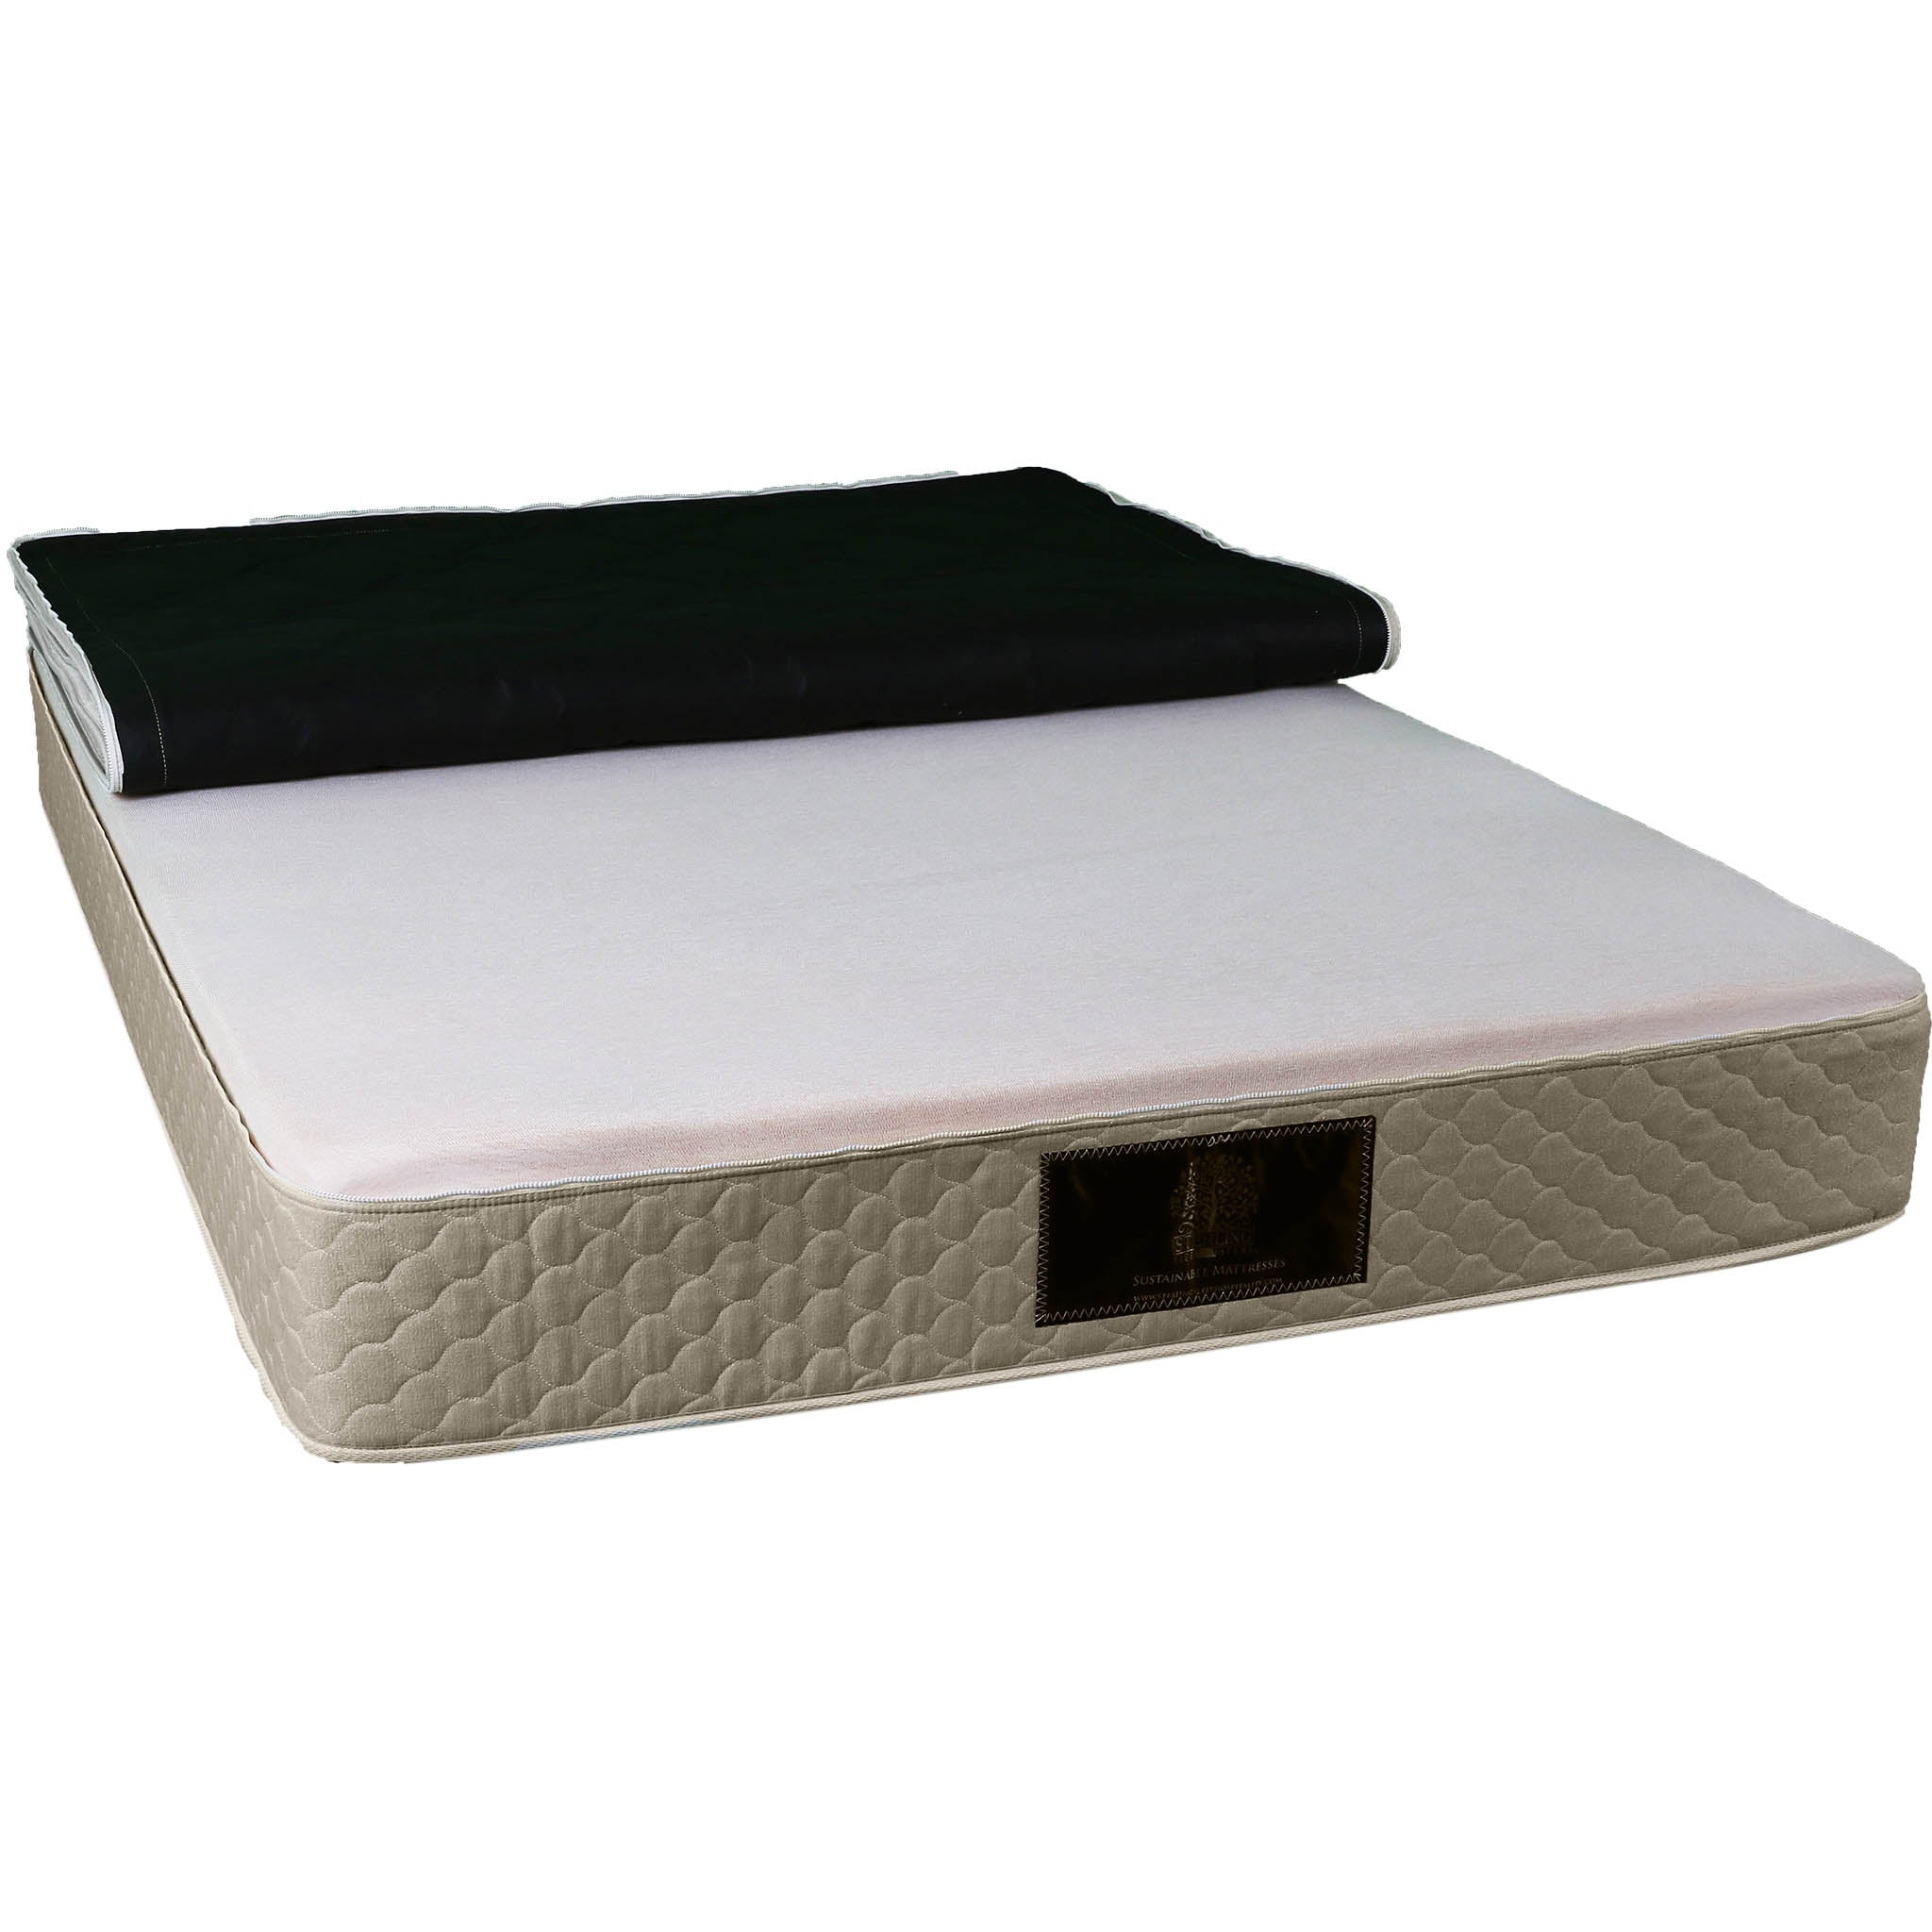 Hospitality 520/525 Mattress - Sterling Sleep Systems